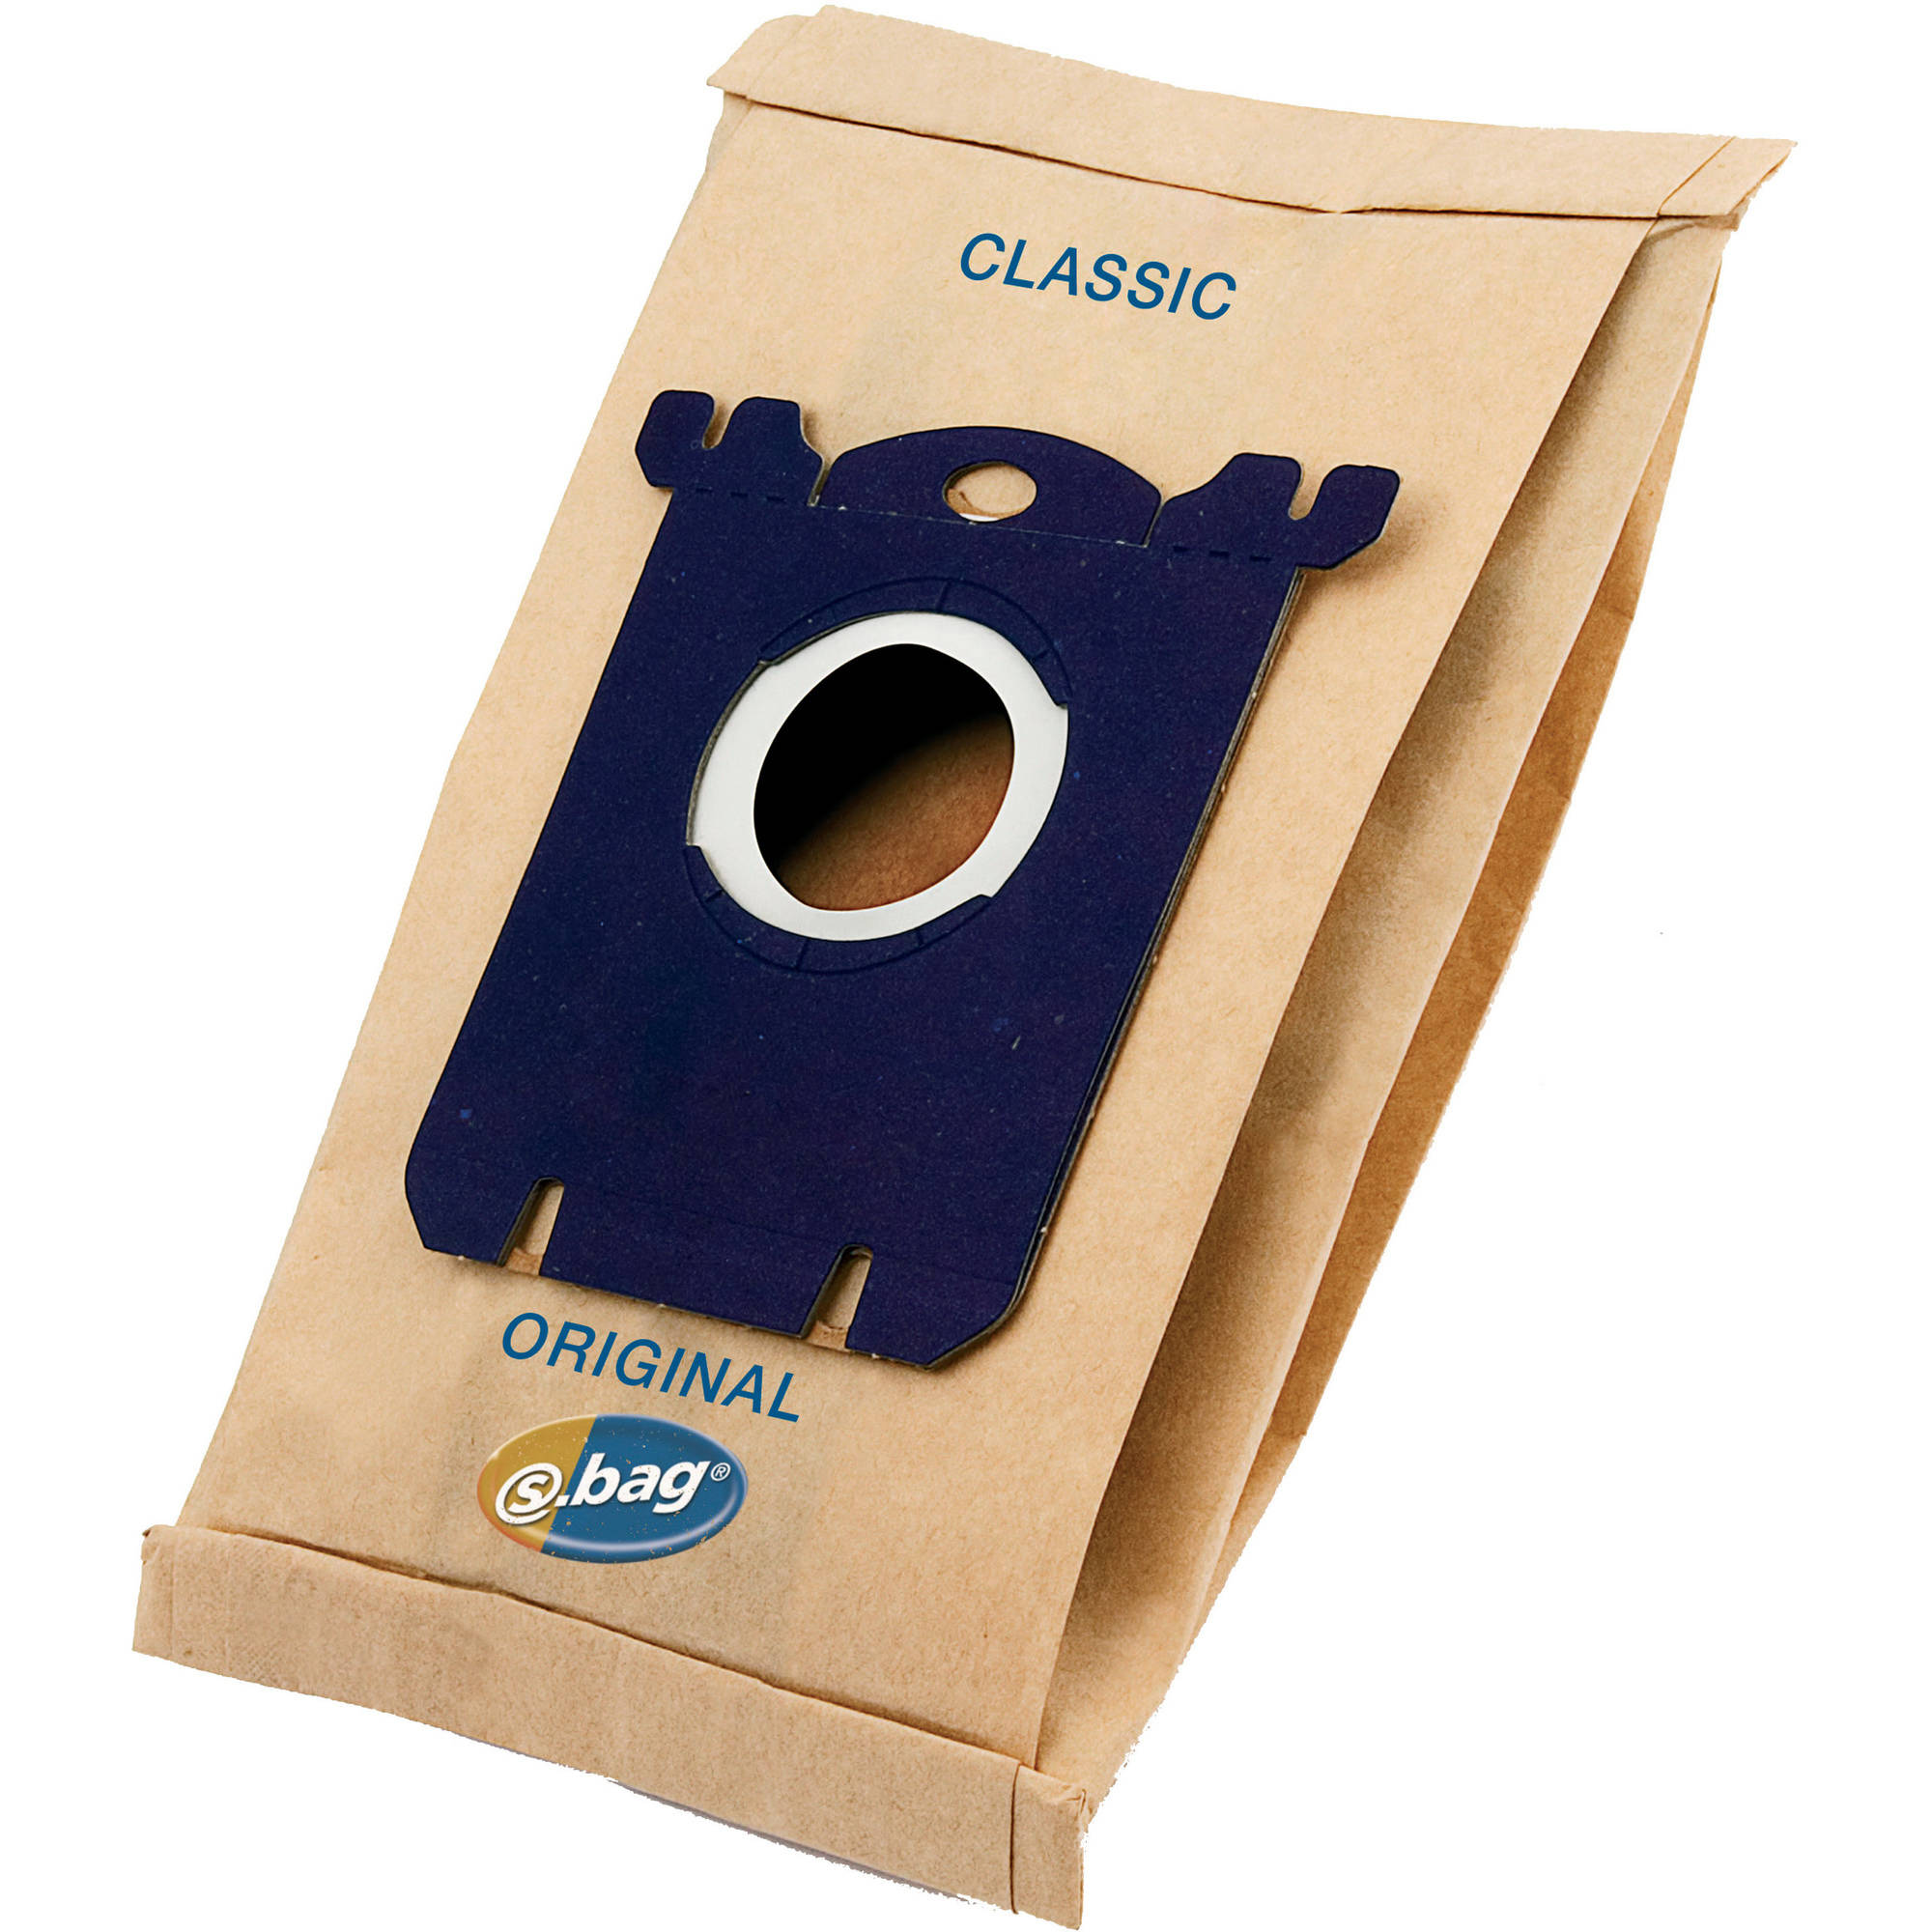 Electrolux S-Bag Classic Vacuum Bags, Pack of 5